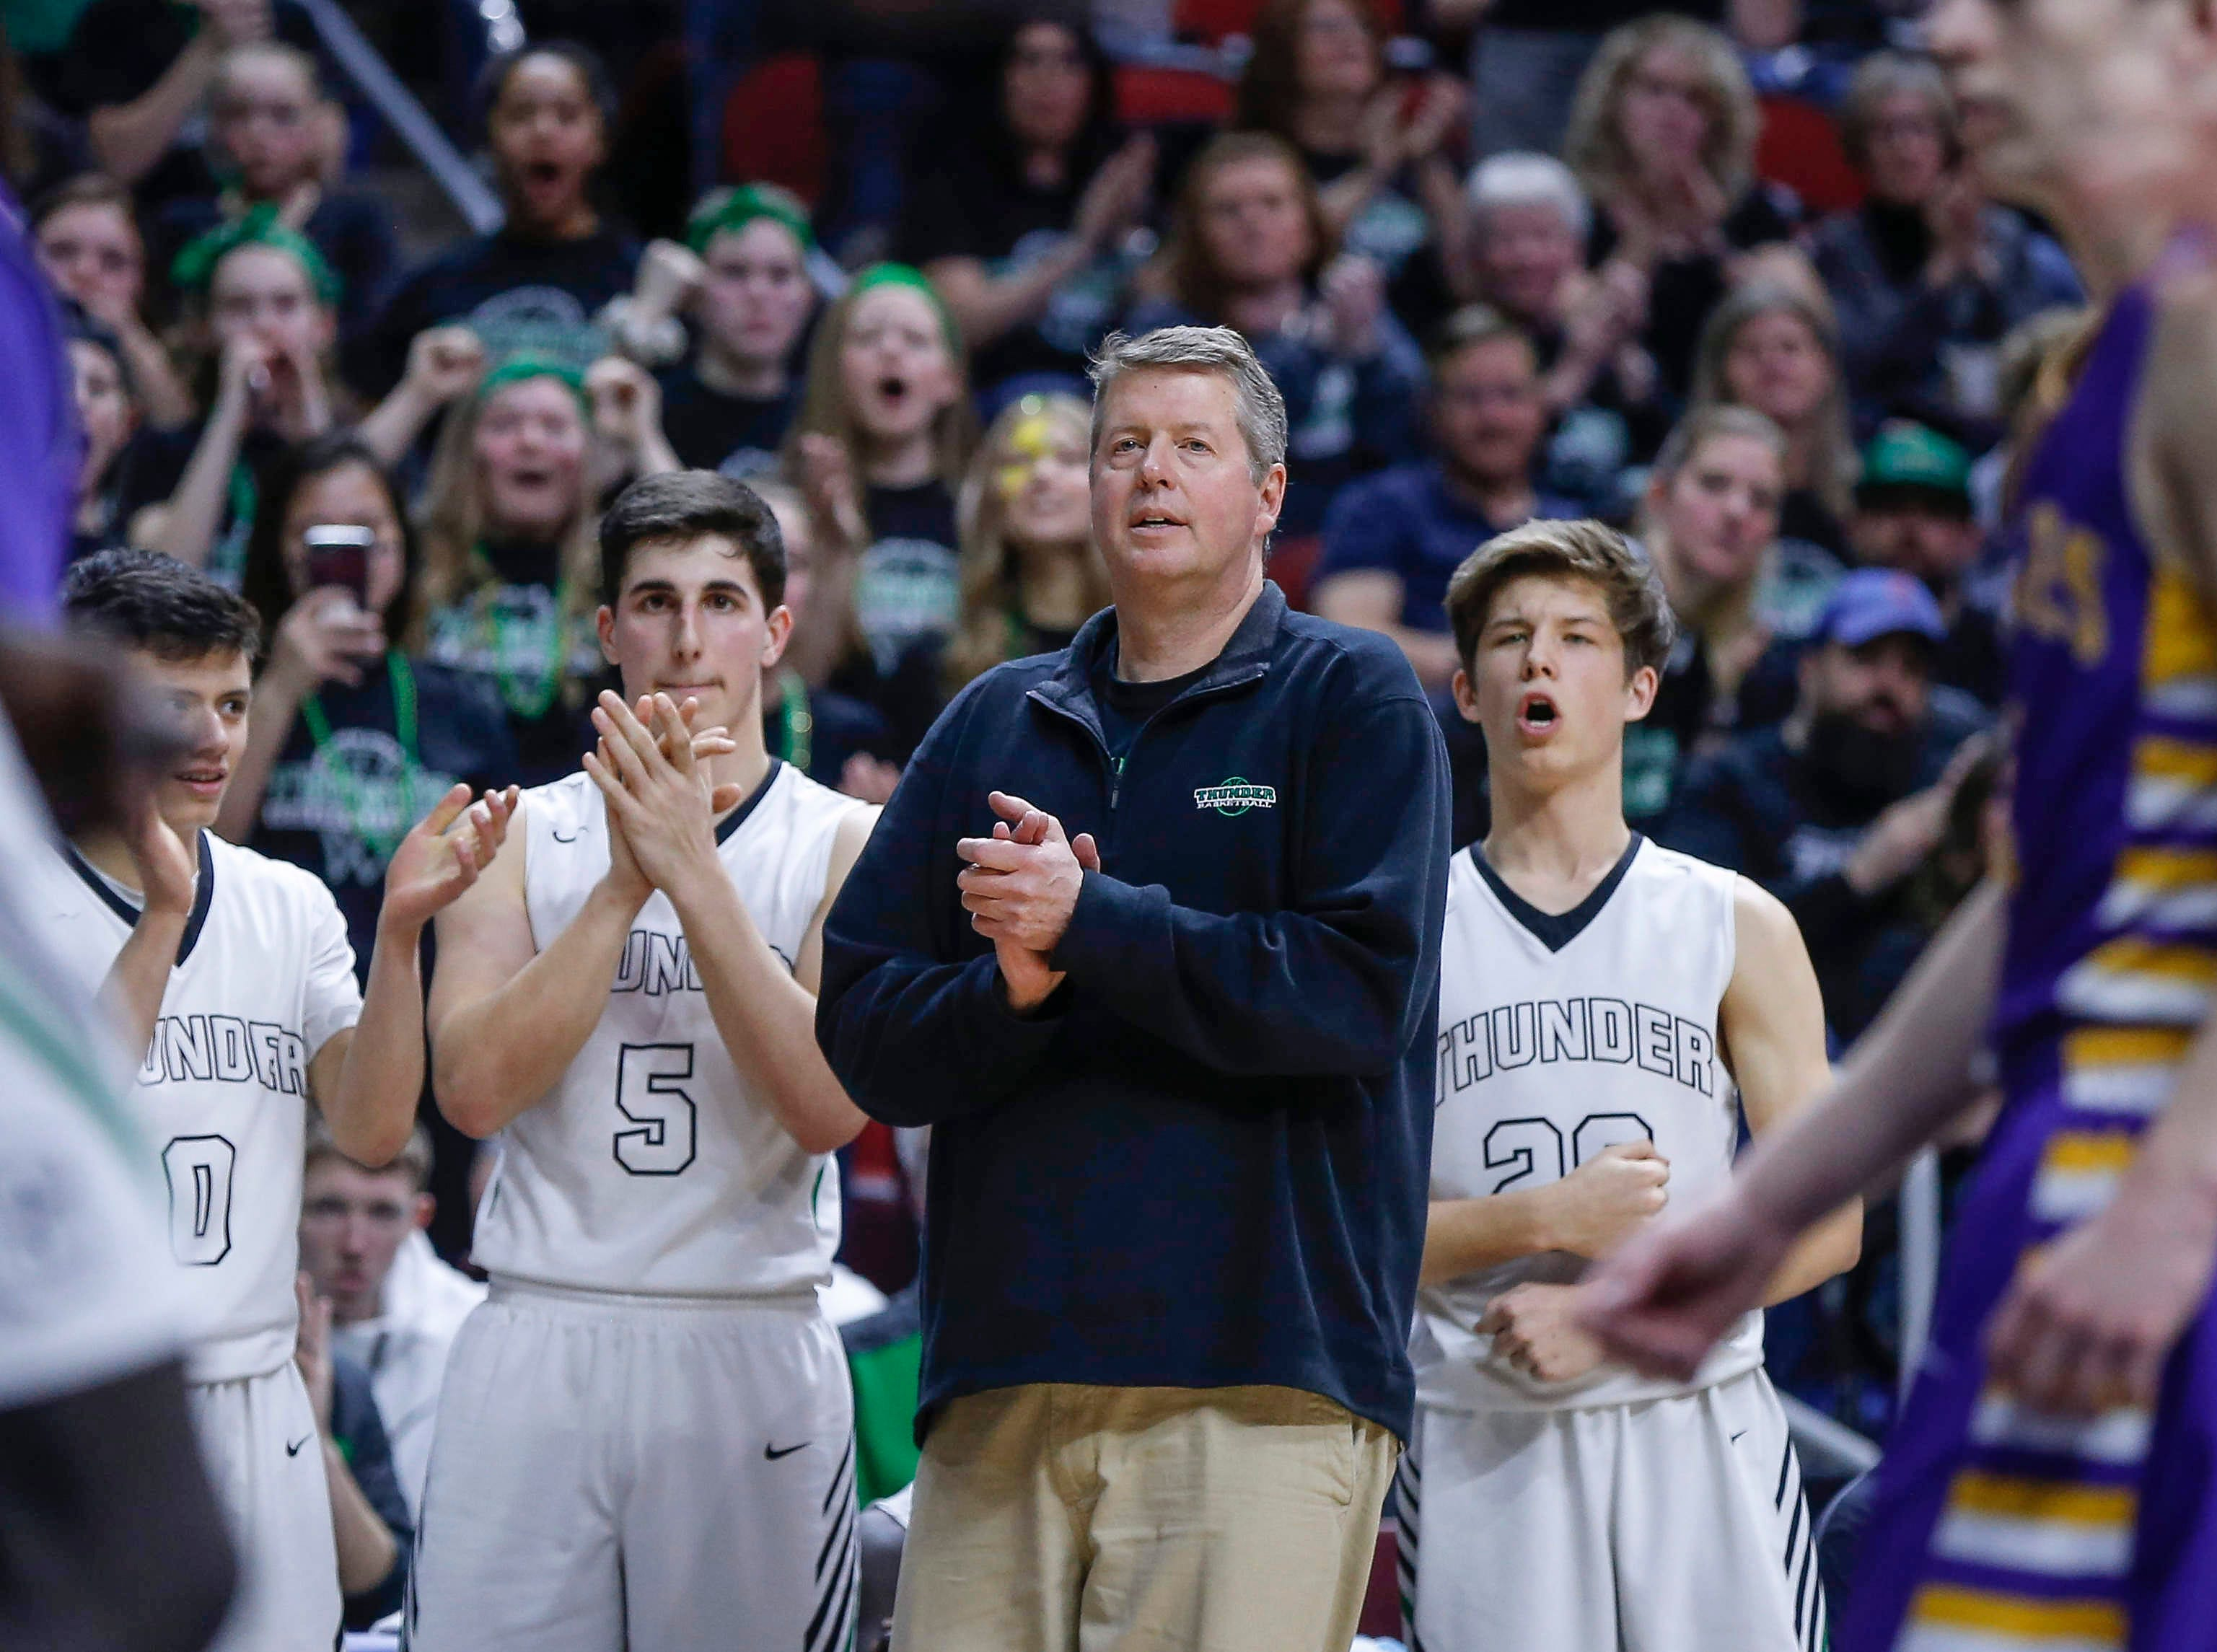 Grand View Christian head boys basketball coach David Stubbs and the Thunder bench react to a foul called against Alburnett during the Class 1A boys state basketball championship game against Alburnett on Friday, March 8, 2019, at Wells Fargo Arena in Des Moines.